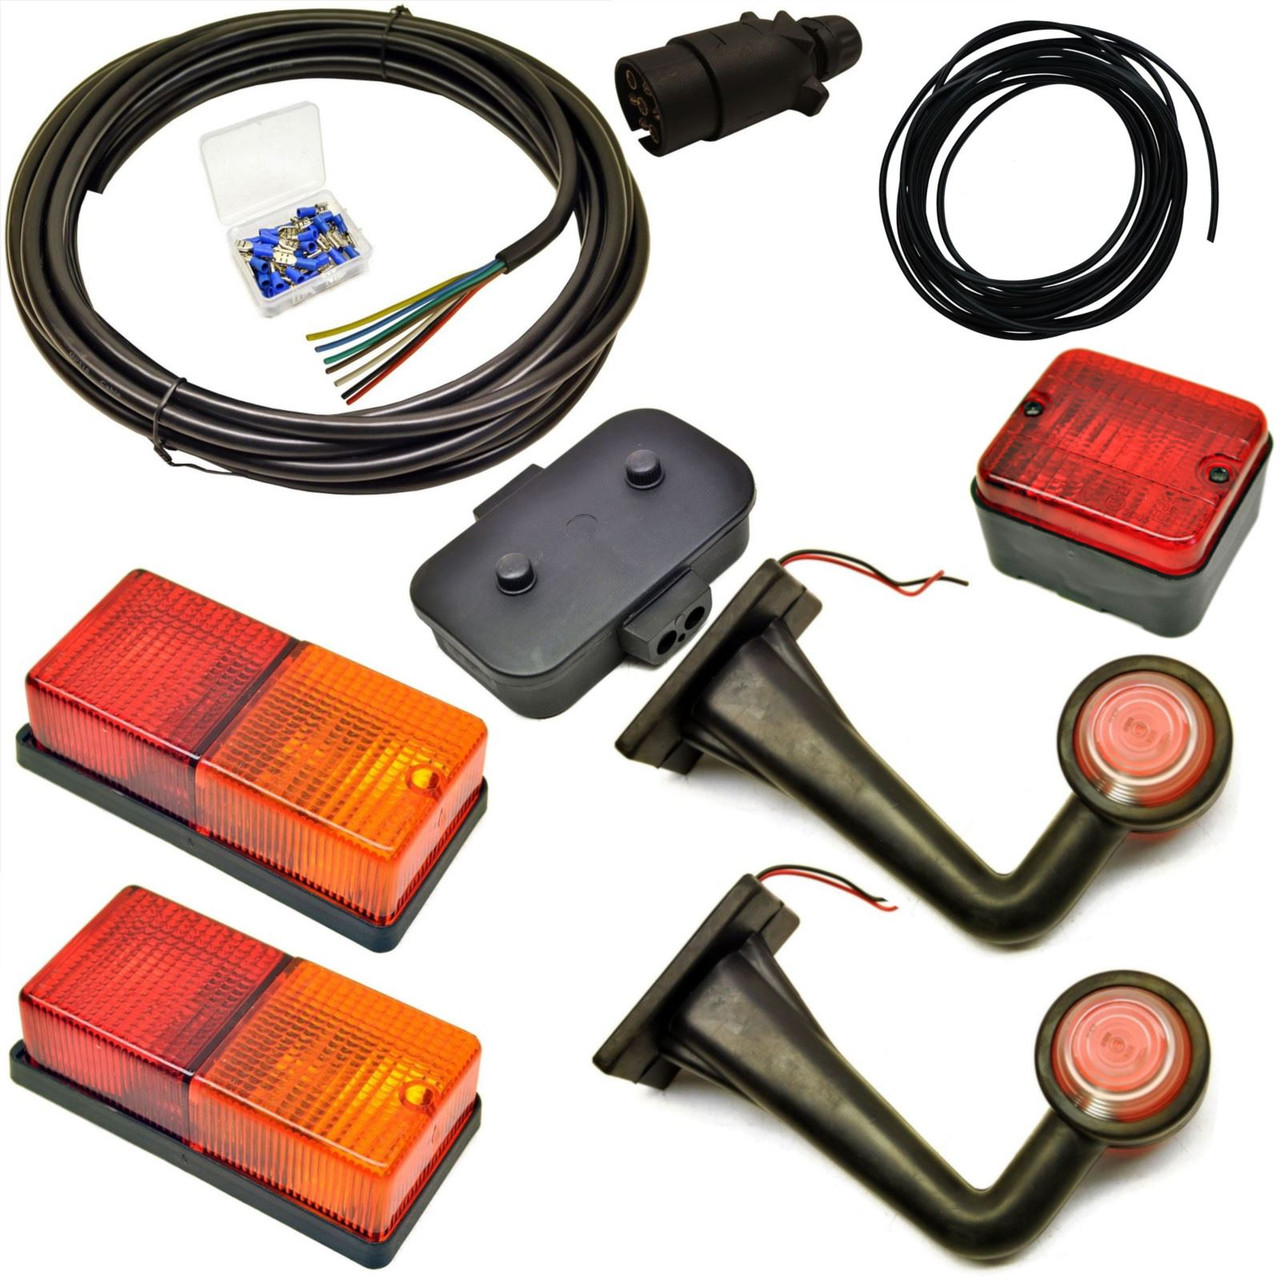 small resolution of 10m trailer light wiring kit rear lights side front marker plug junction box ab tools online